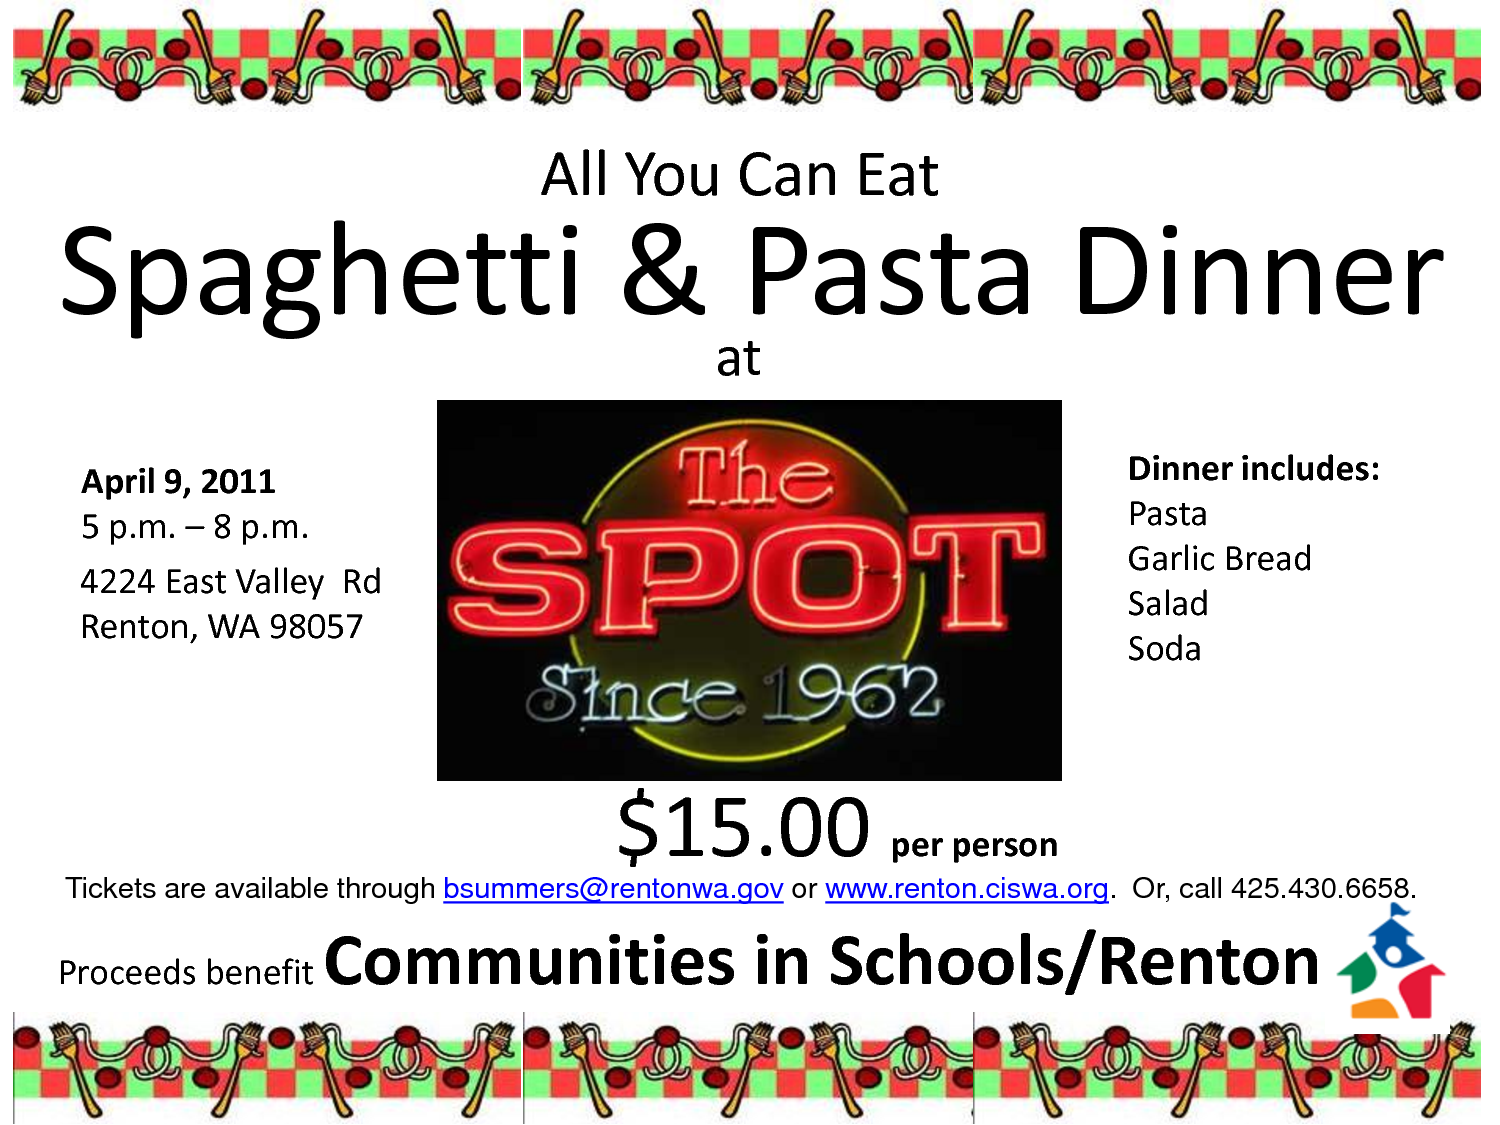 Free Fundraiser Flyer Templates And Spaghetti Fundraiser